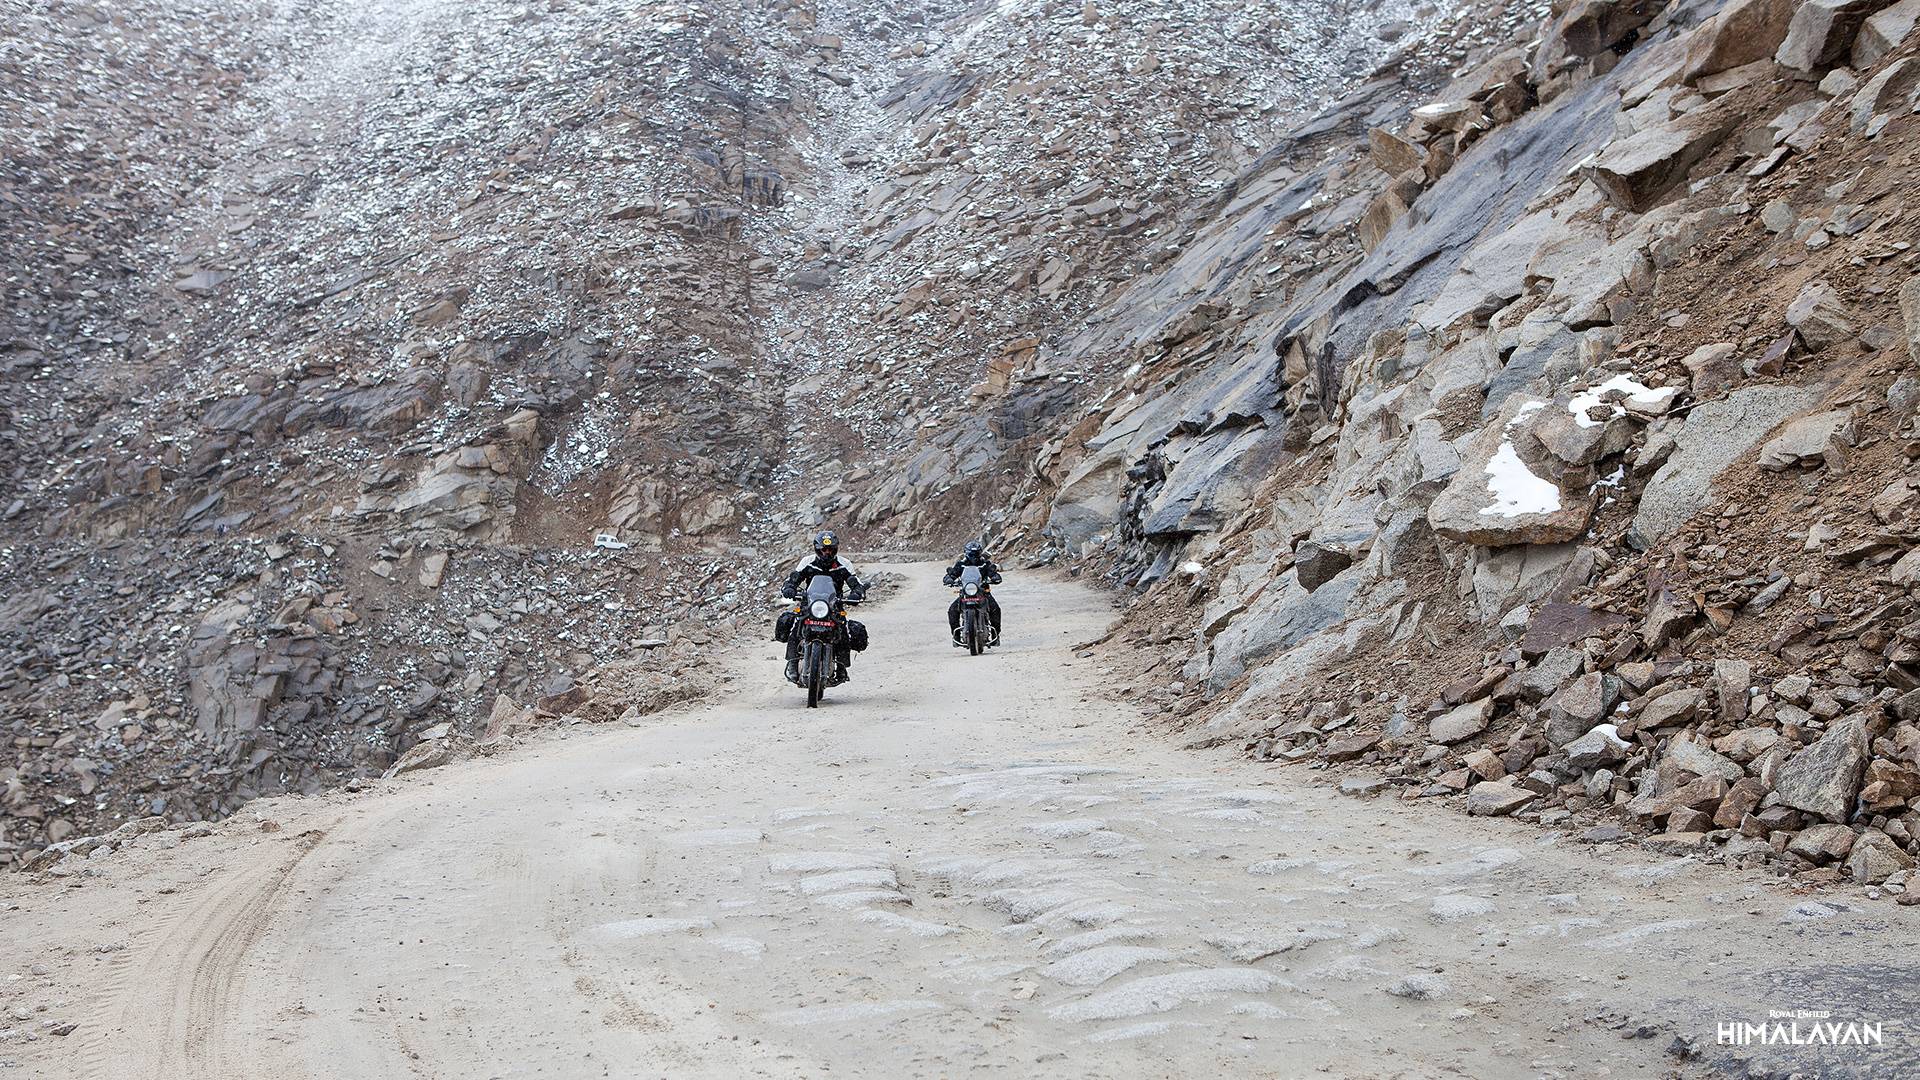 New Royal Enfield Himalayan coming soon